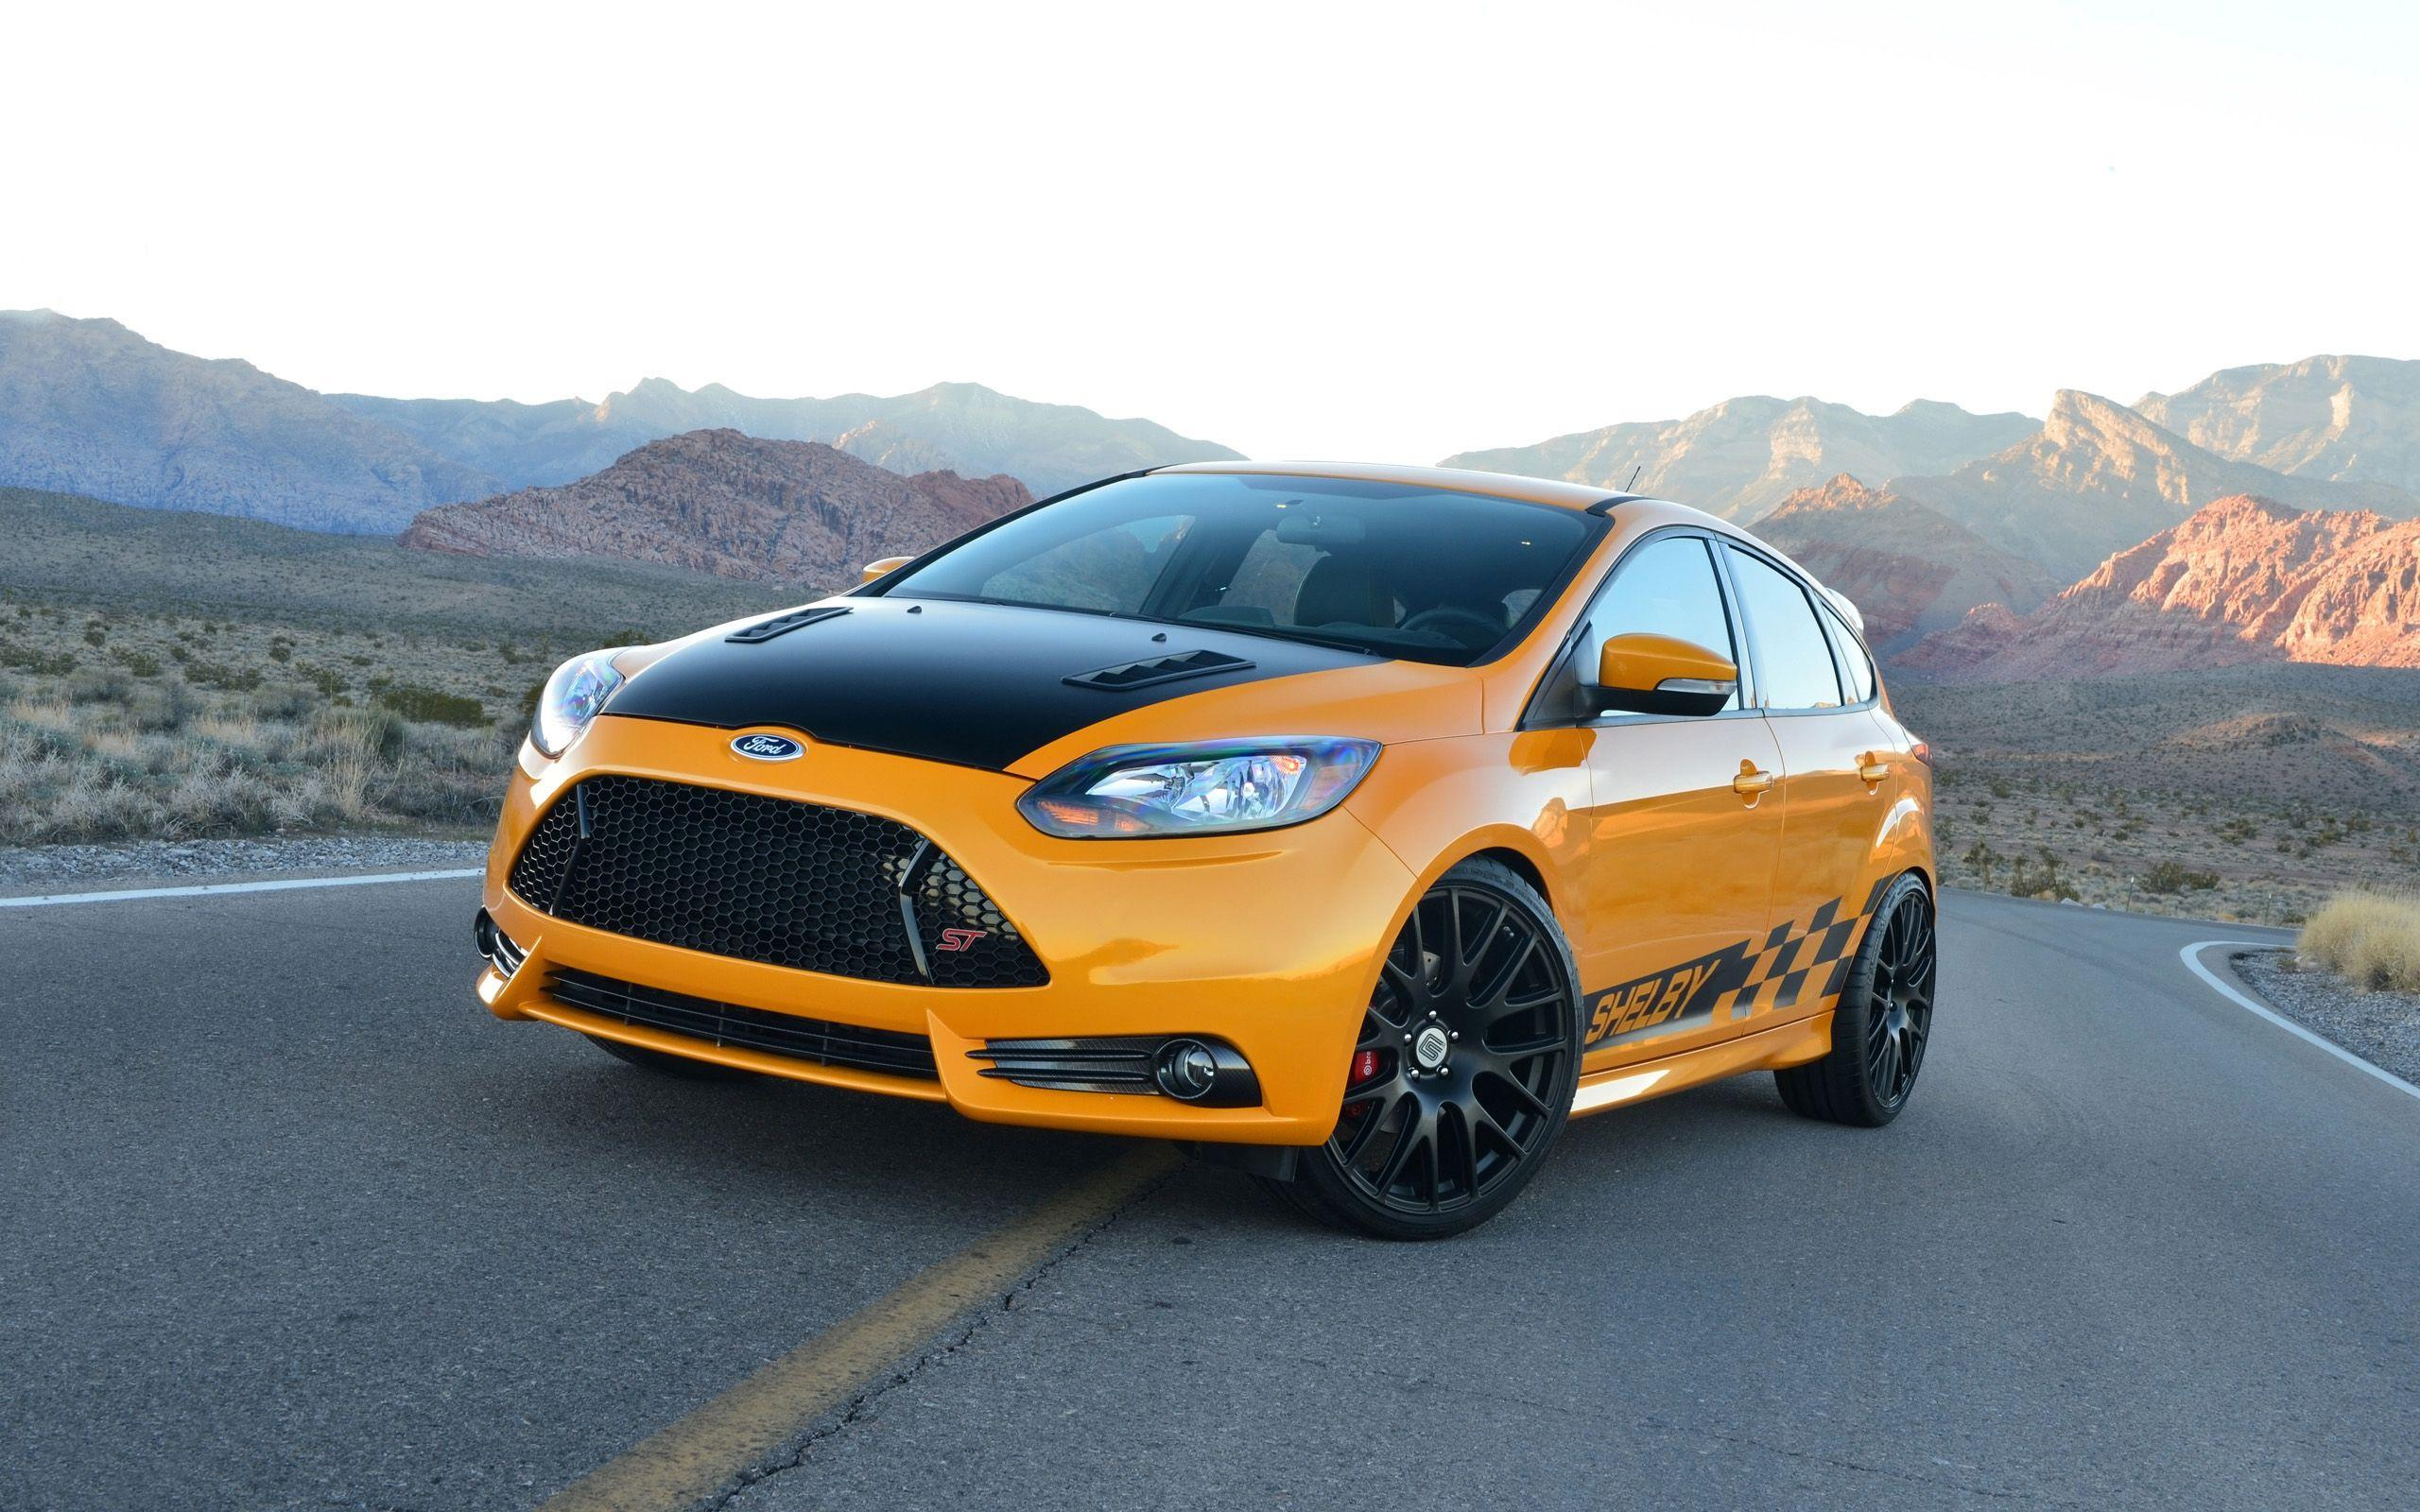 2014 Shelby Ford Focus ST Wallpapers